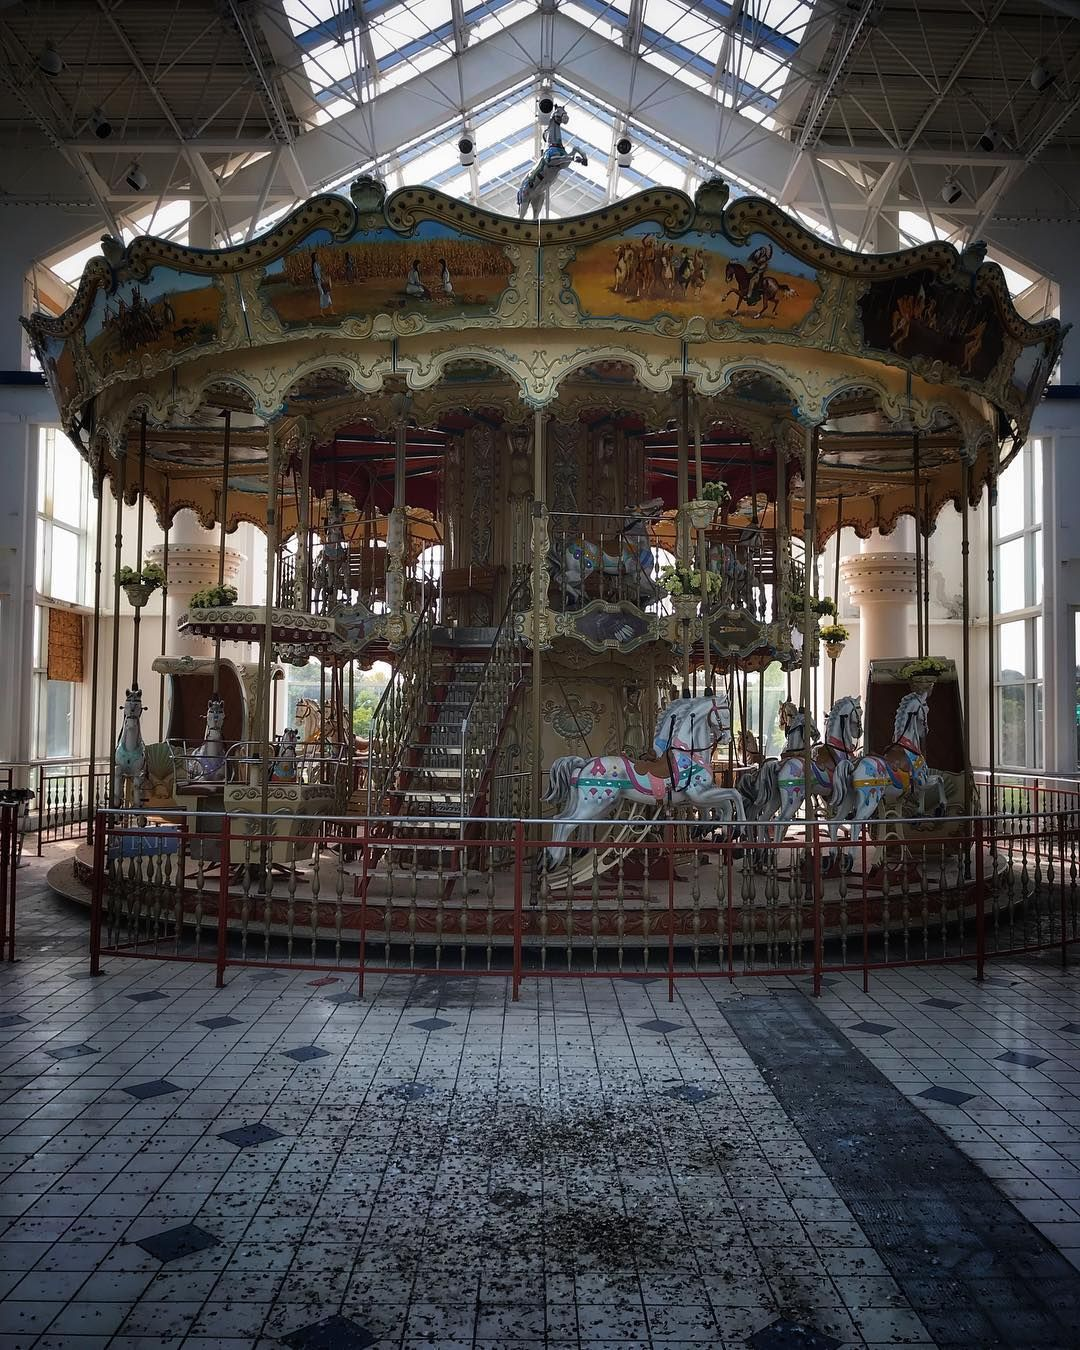 "Seph Lawless On Instagram: ""How Bout An Abandoned Mall"